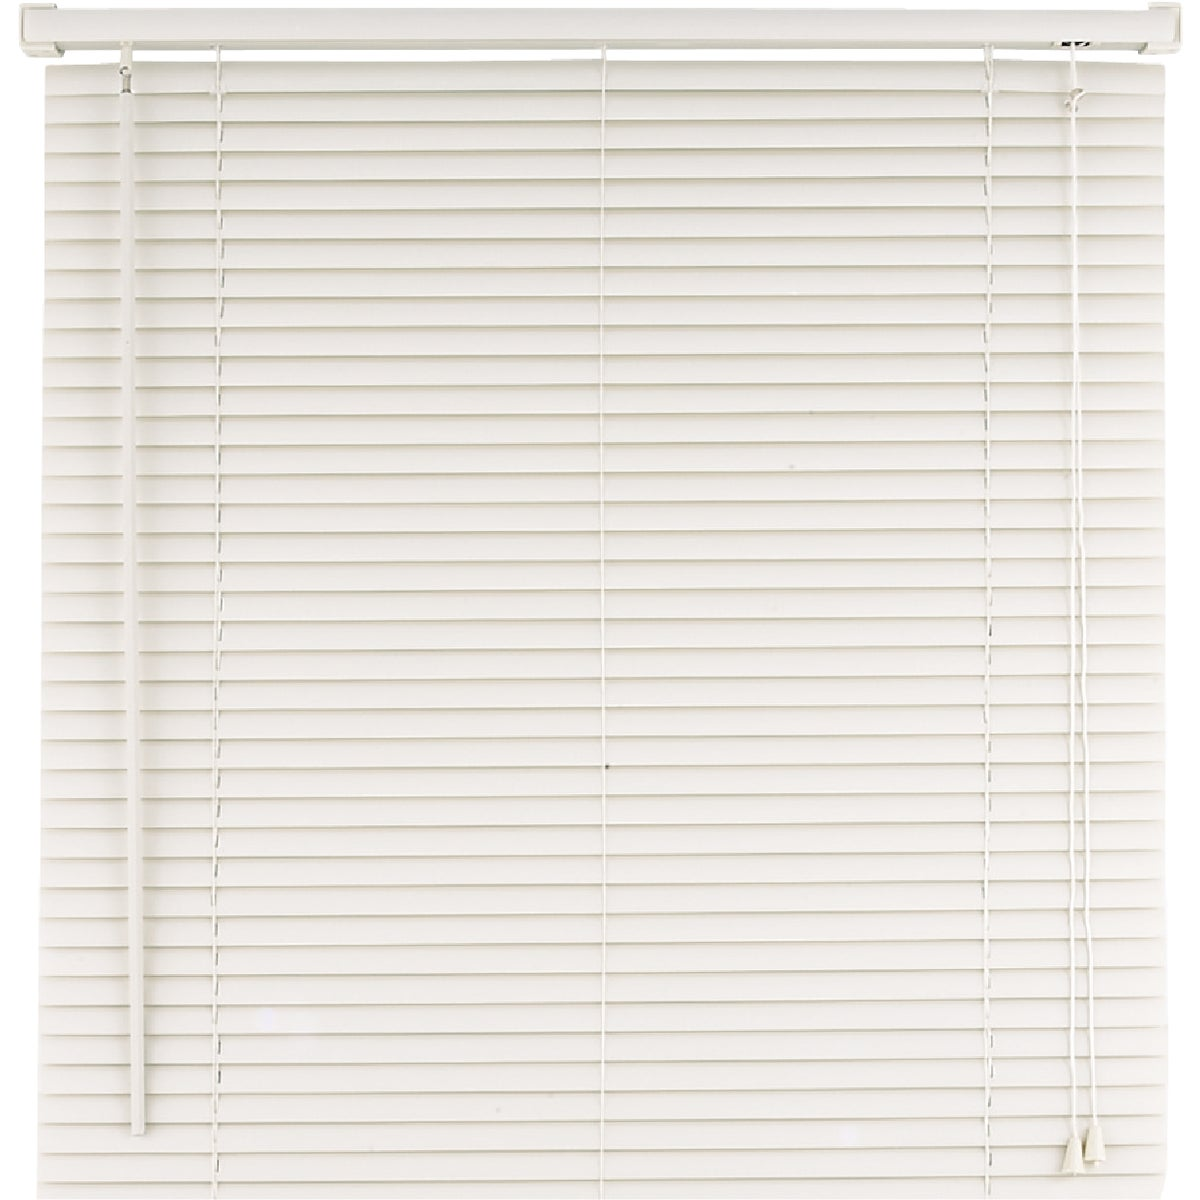 35X64 WHITE BLIND - 15040 by Lotus Wind Incom